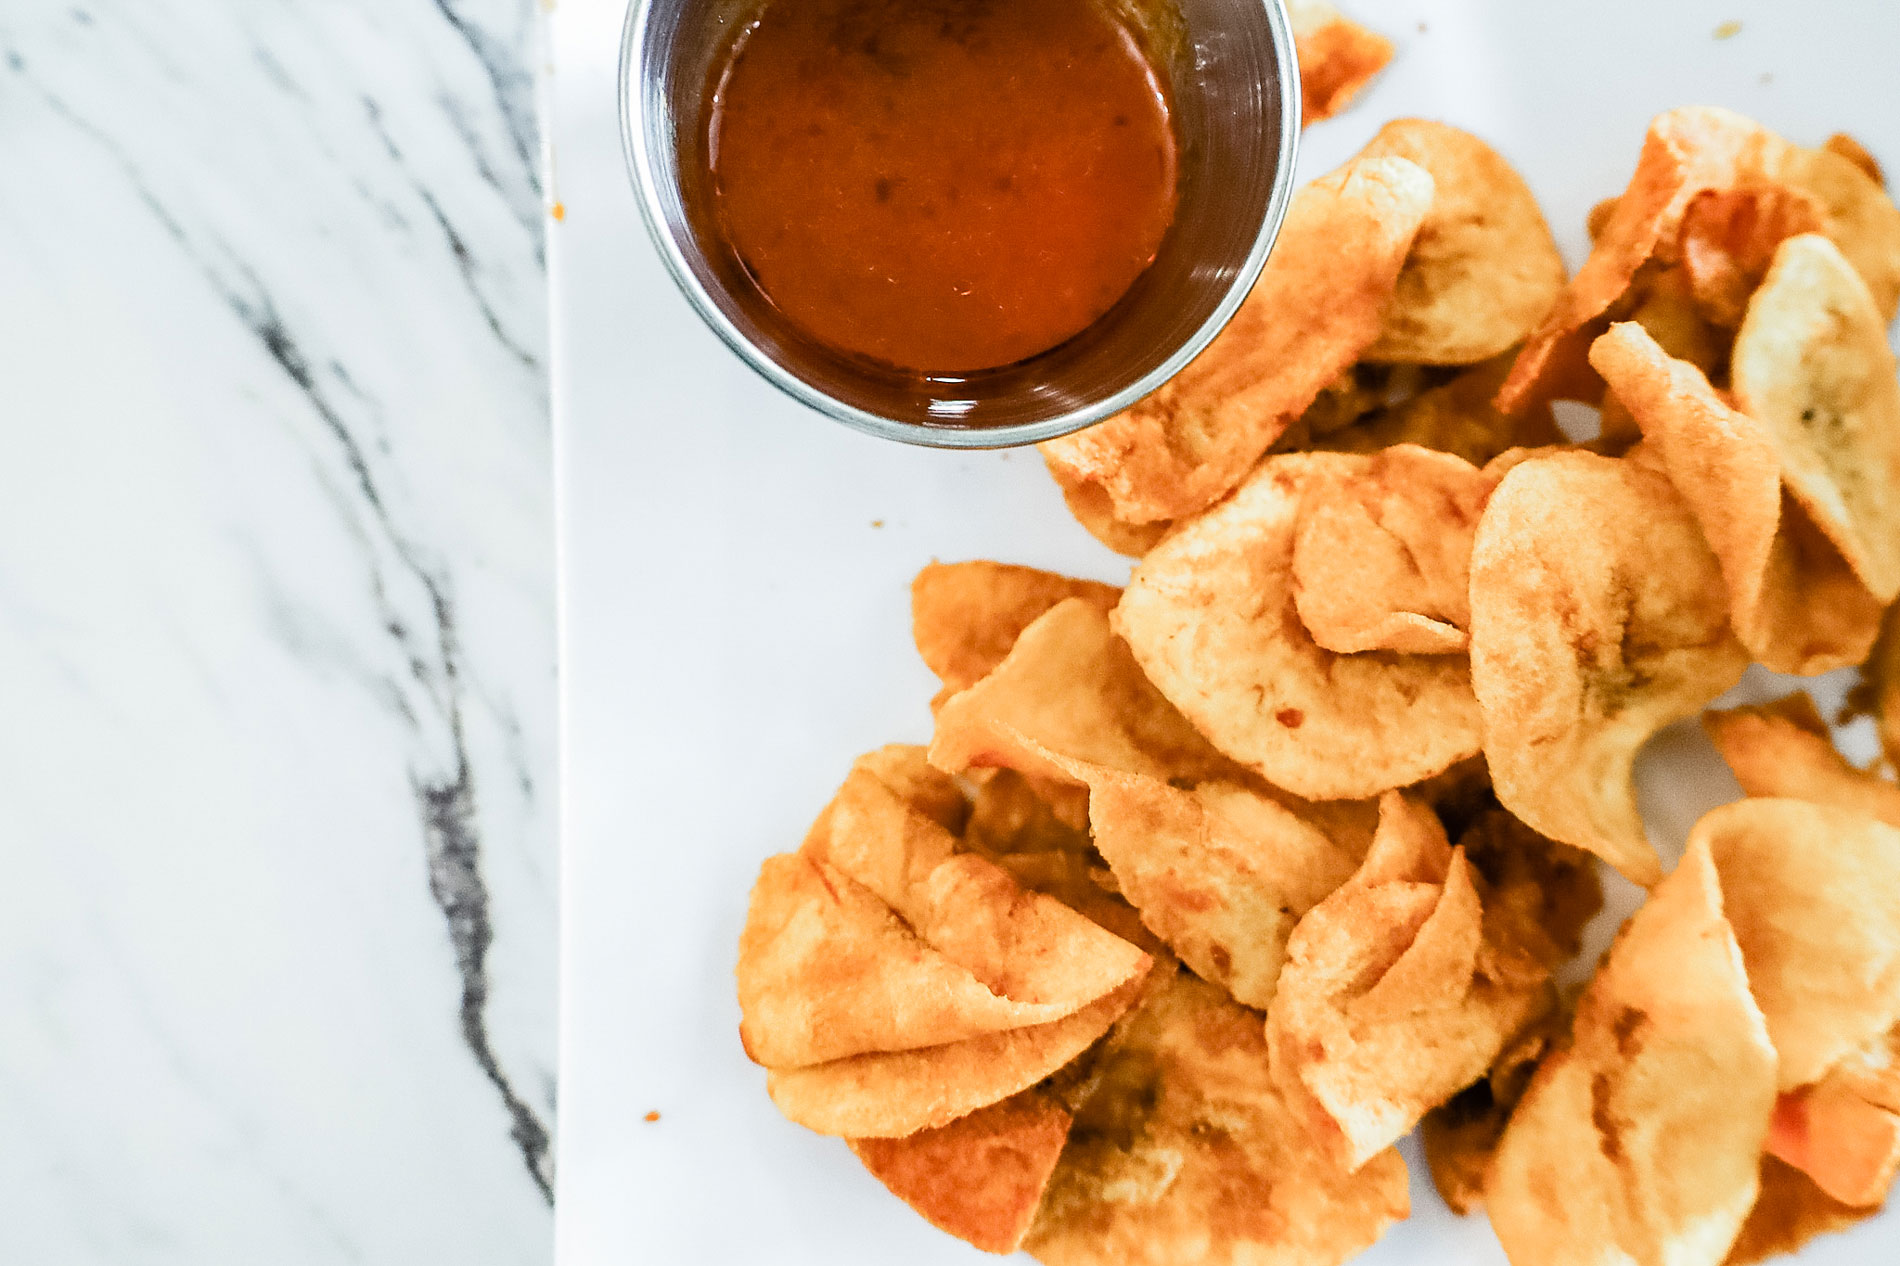 A plate of fried plantain chips.